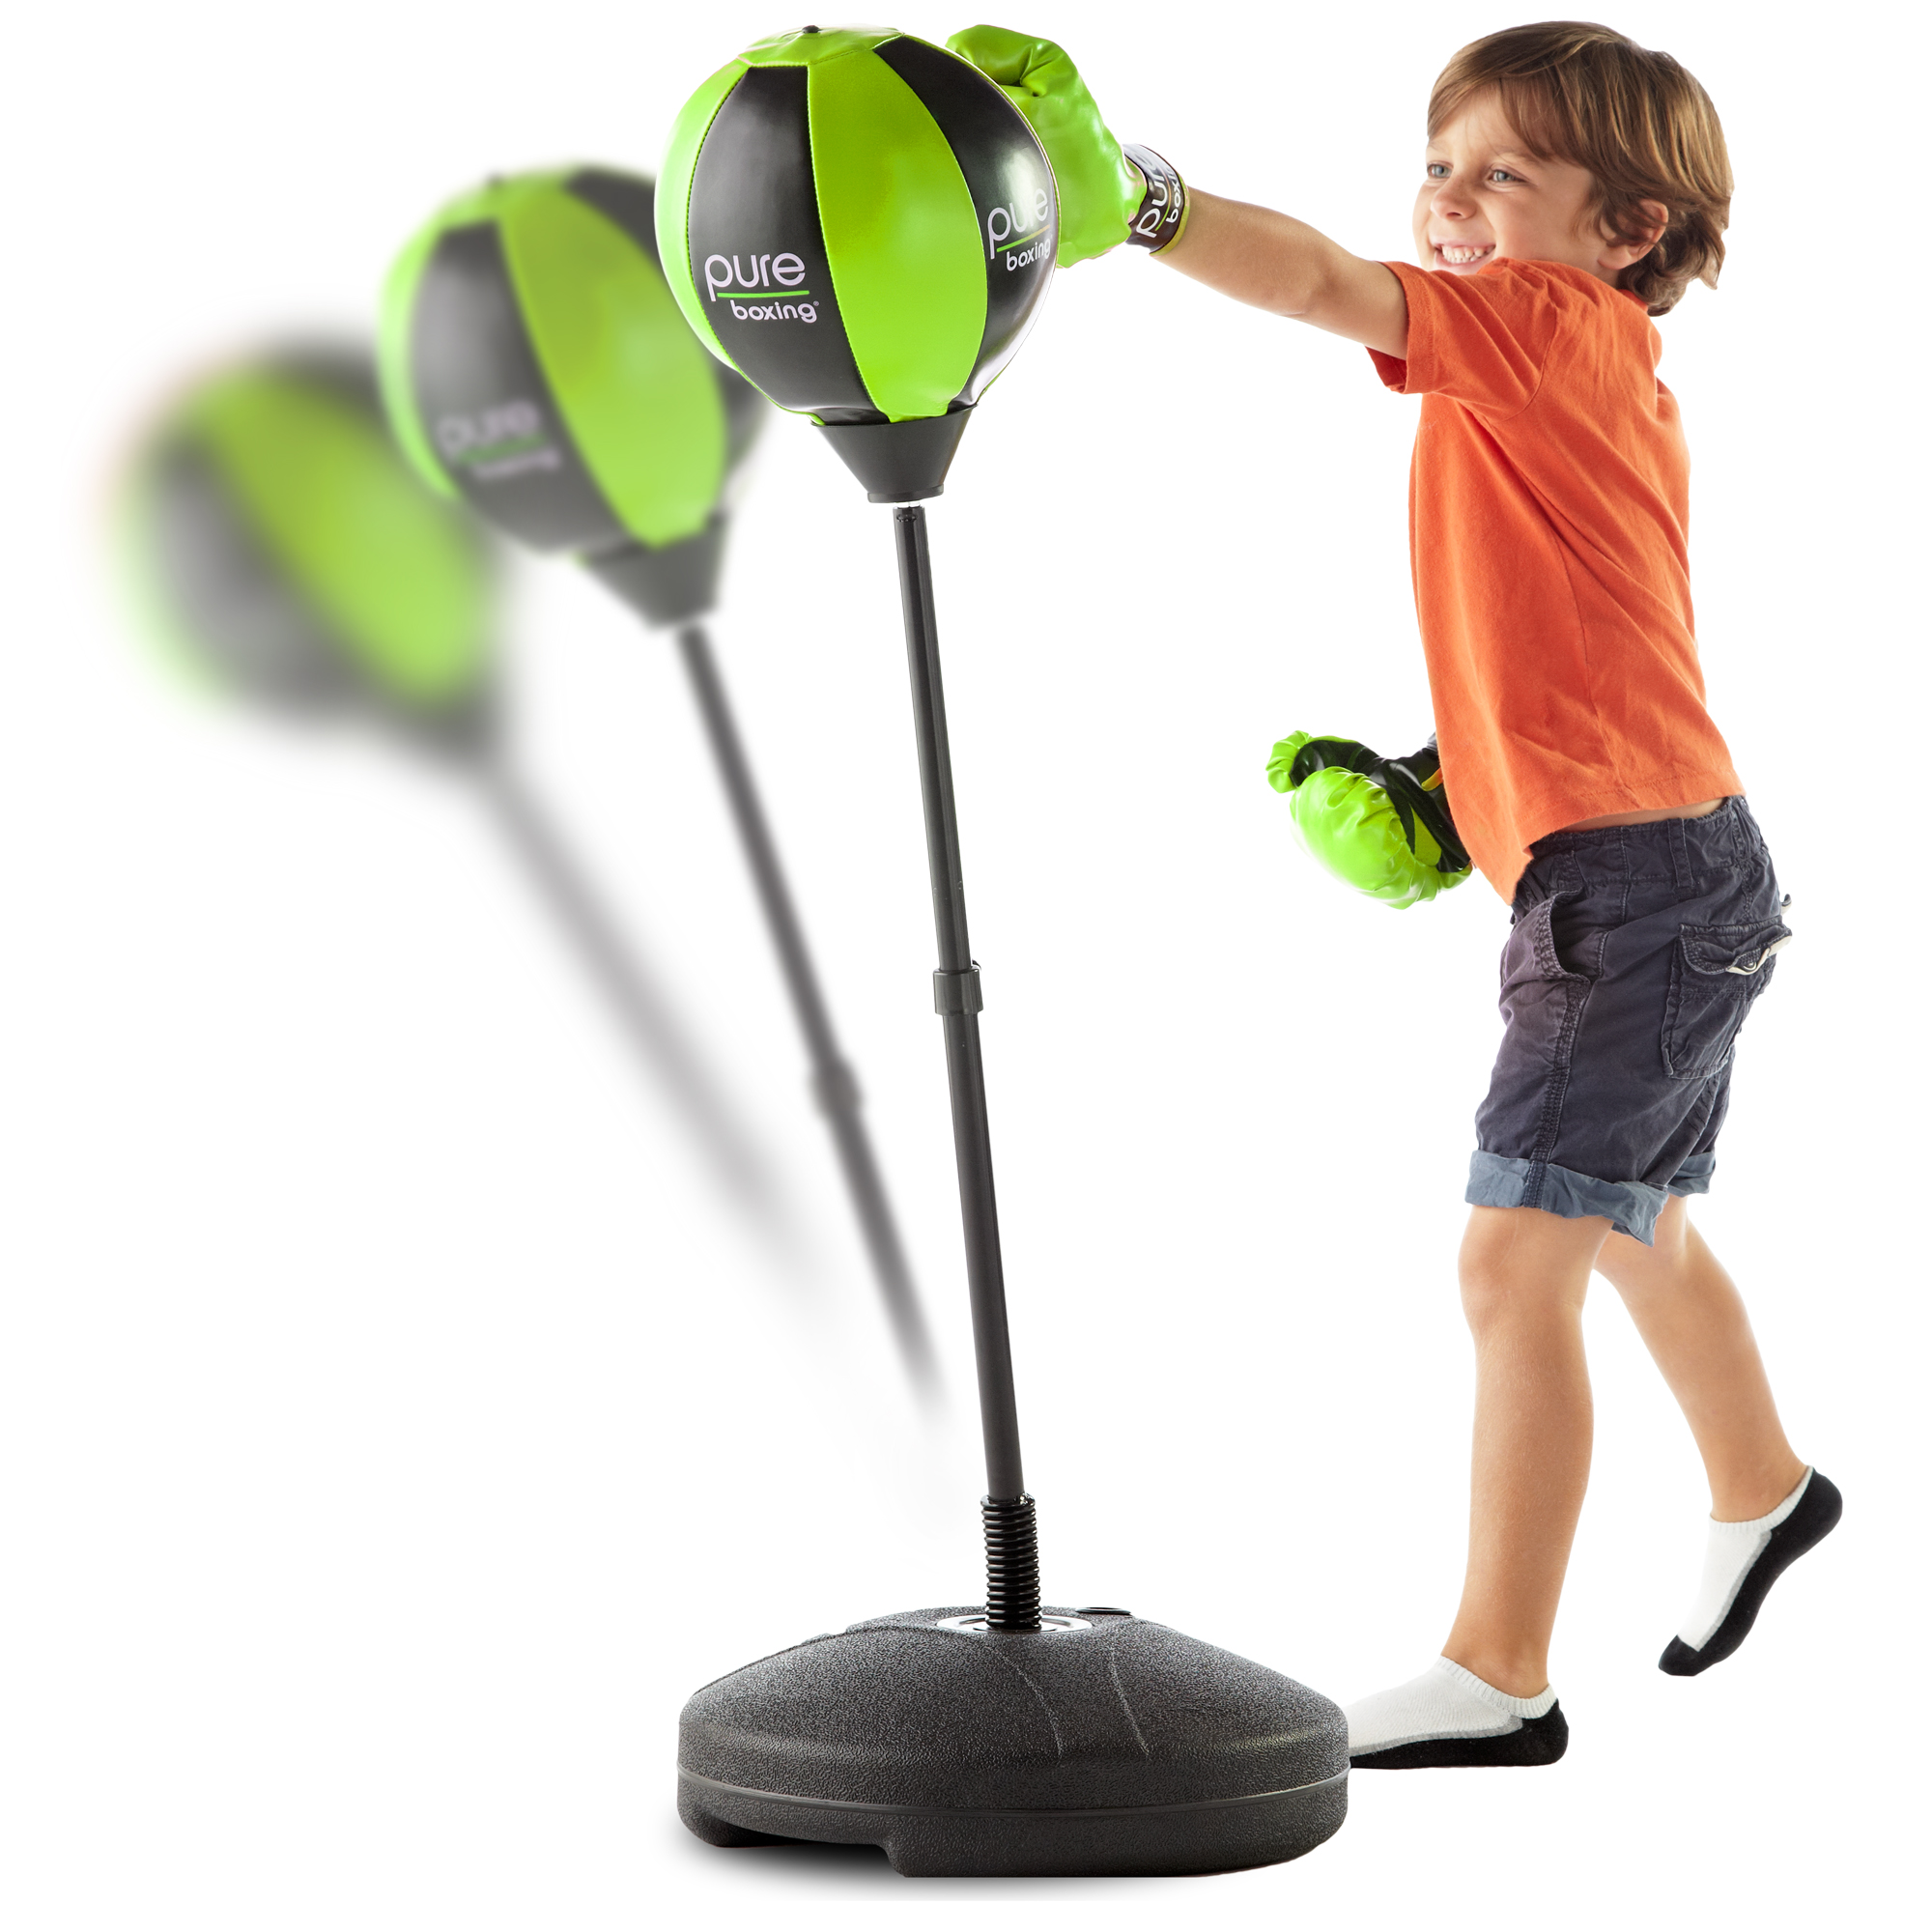 Pure Boxing Punch and Play Punching Bag for Kids Green by Pure Global Brands Inc